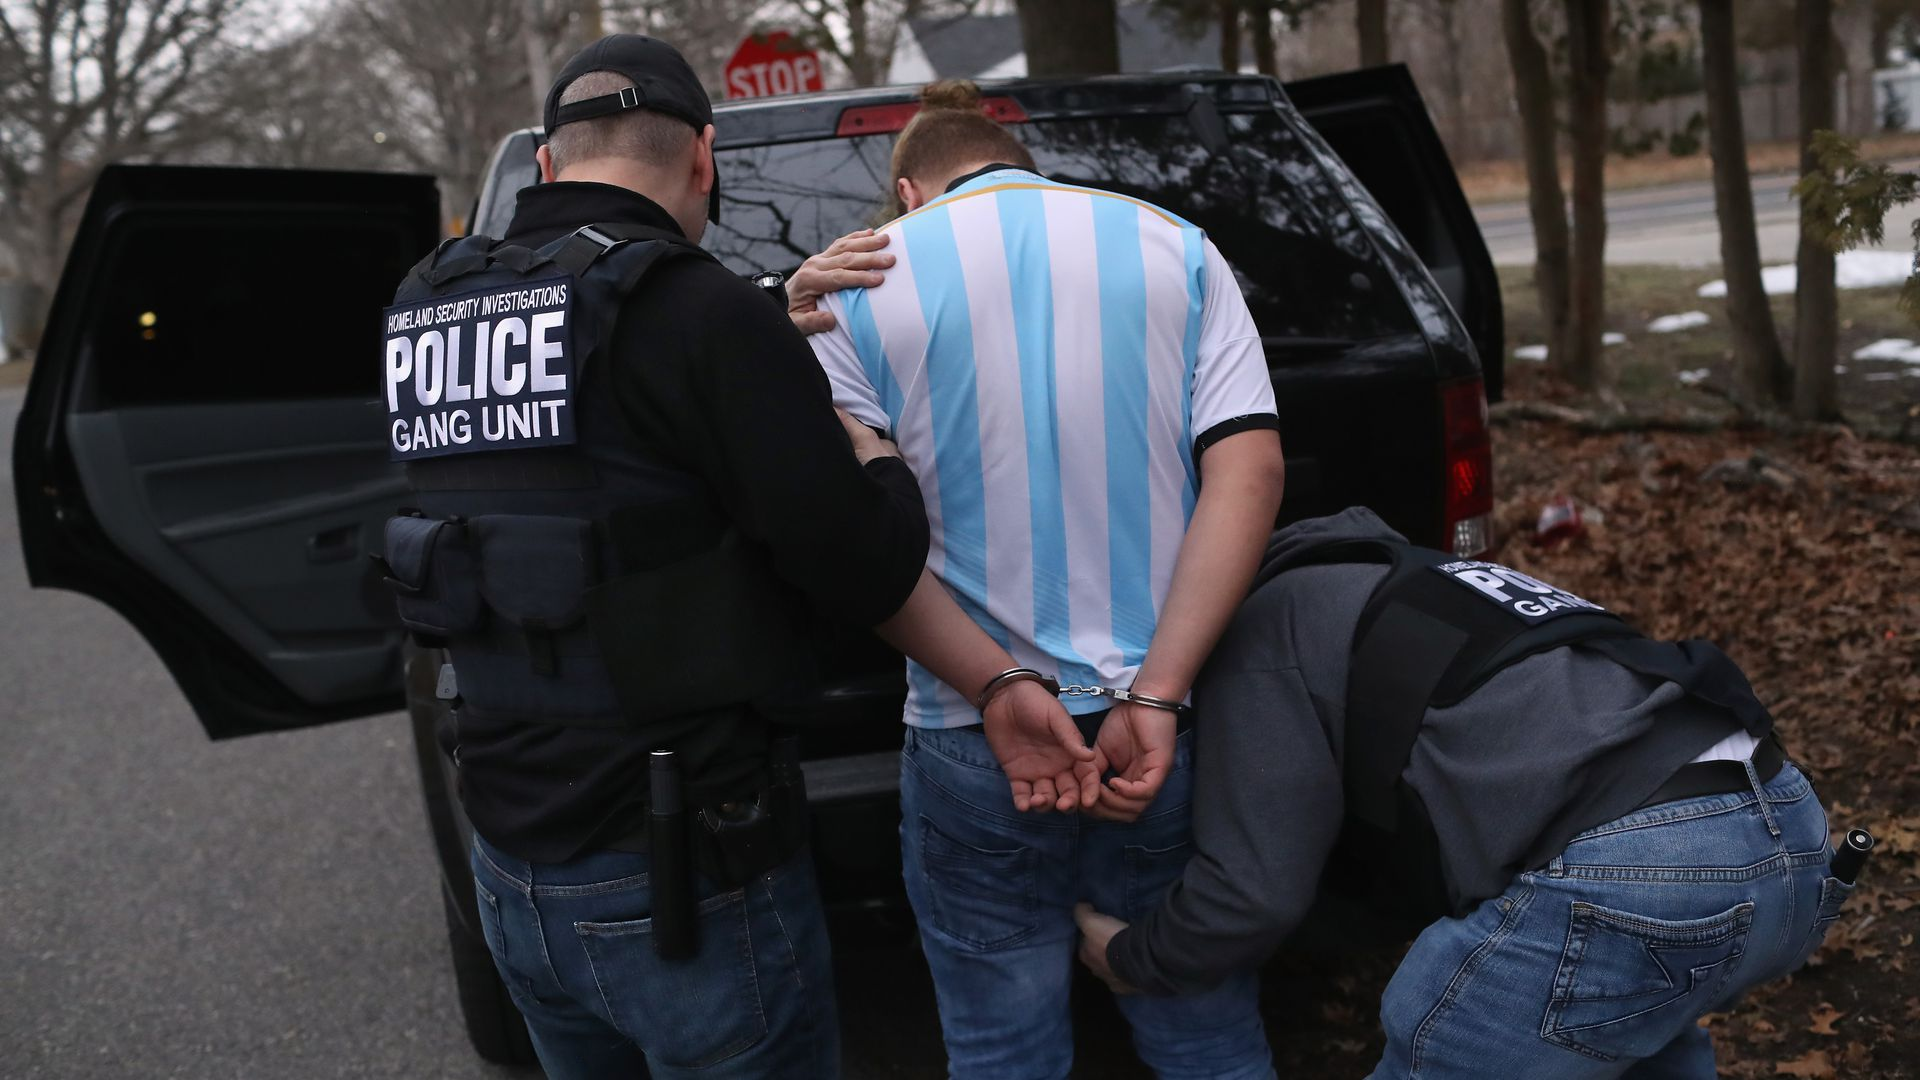 Two police officers frisking a suspected MS-13 gang member who is wearing a blue and white striped shirt and is in handcuffs